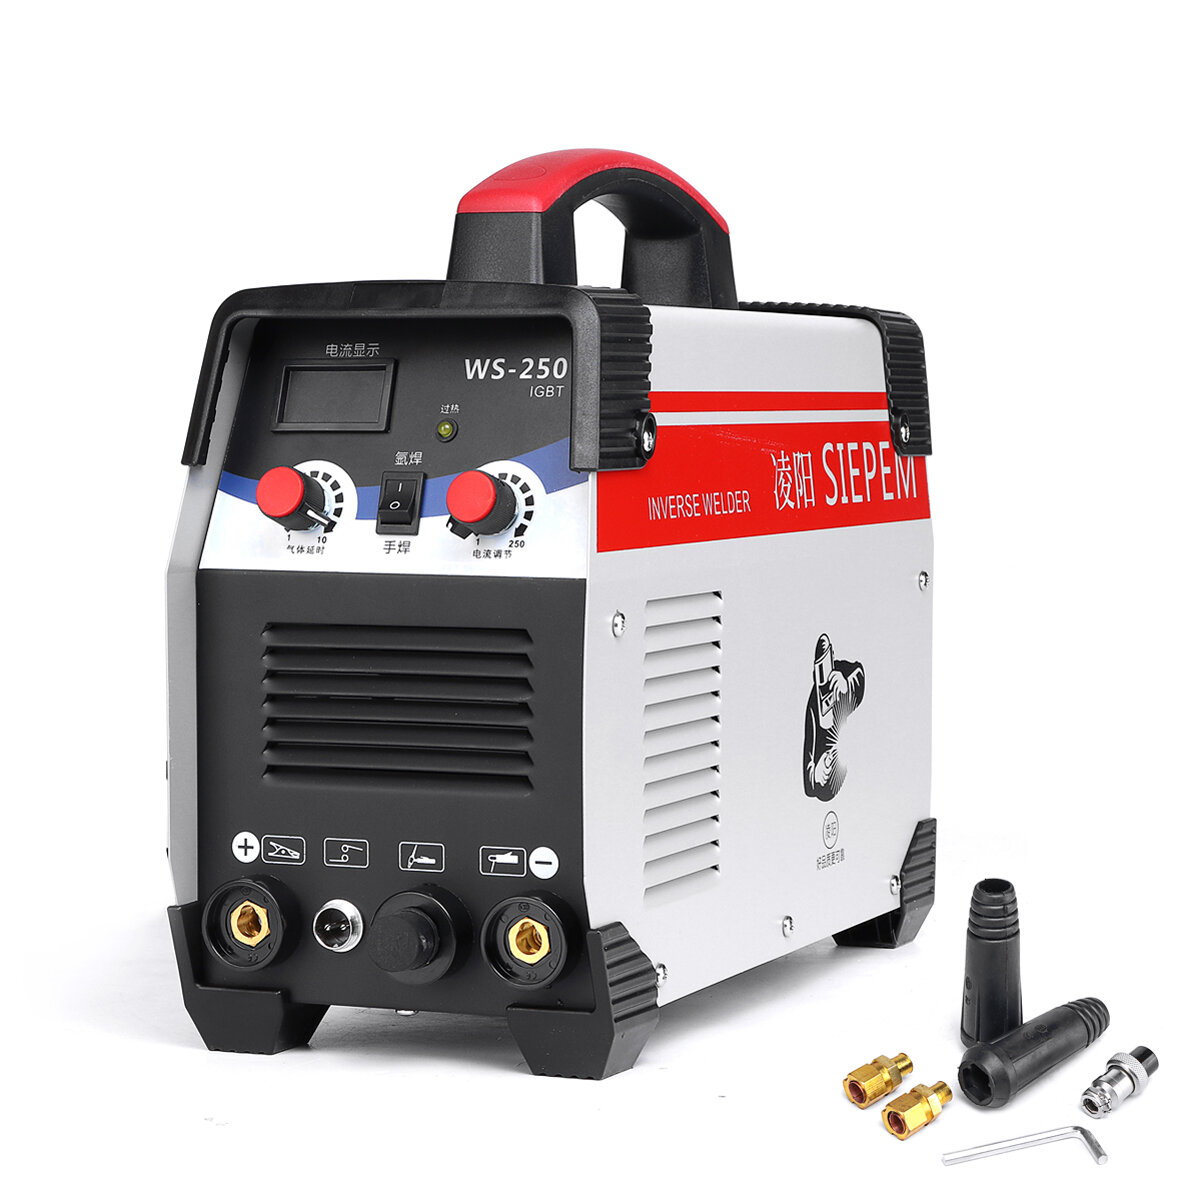 Ws 250 250a 220v Arc Tig 2 In 1 Welding Machine Portable Igbt Inverter Weilding Tools Sale Banggood Com Arrival Notice Arrival Notice